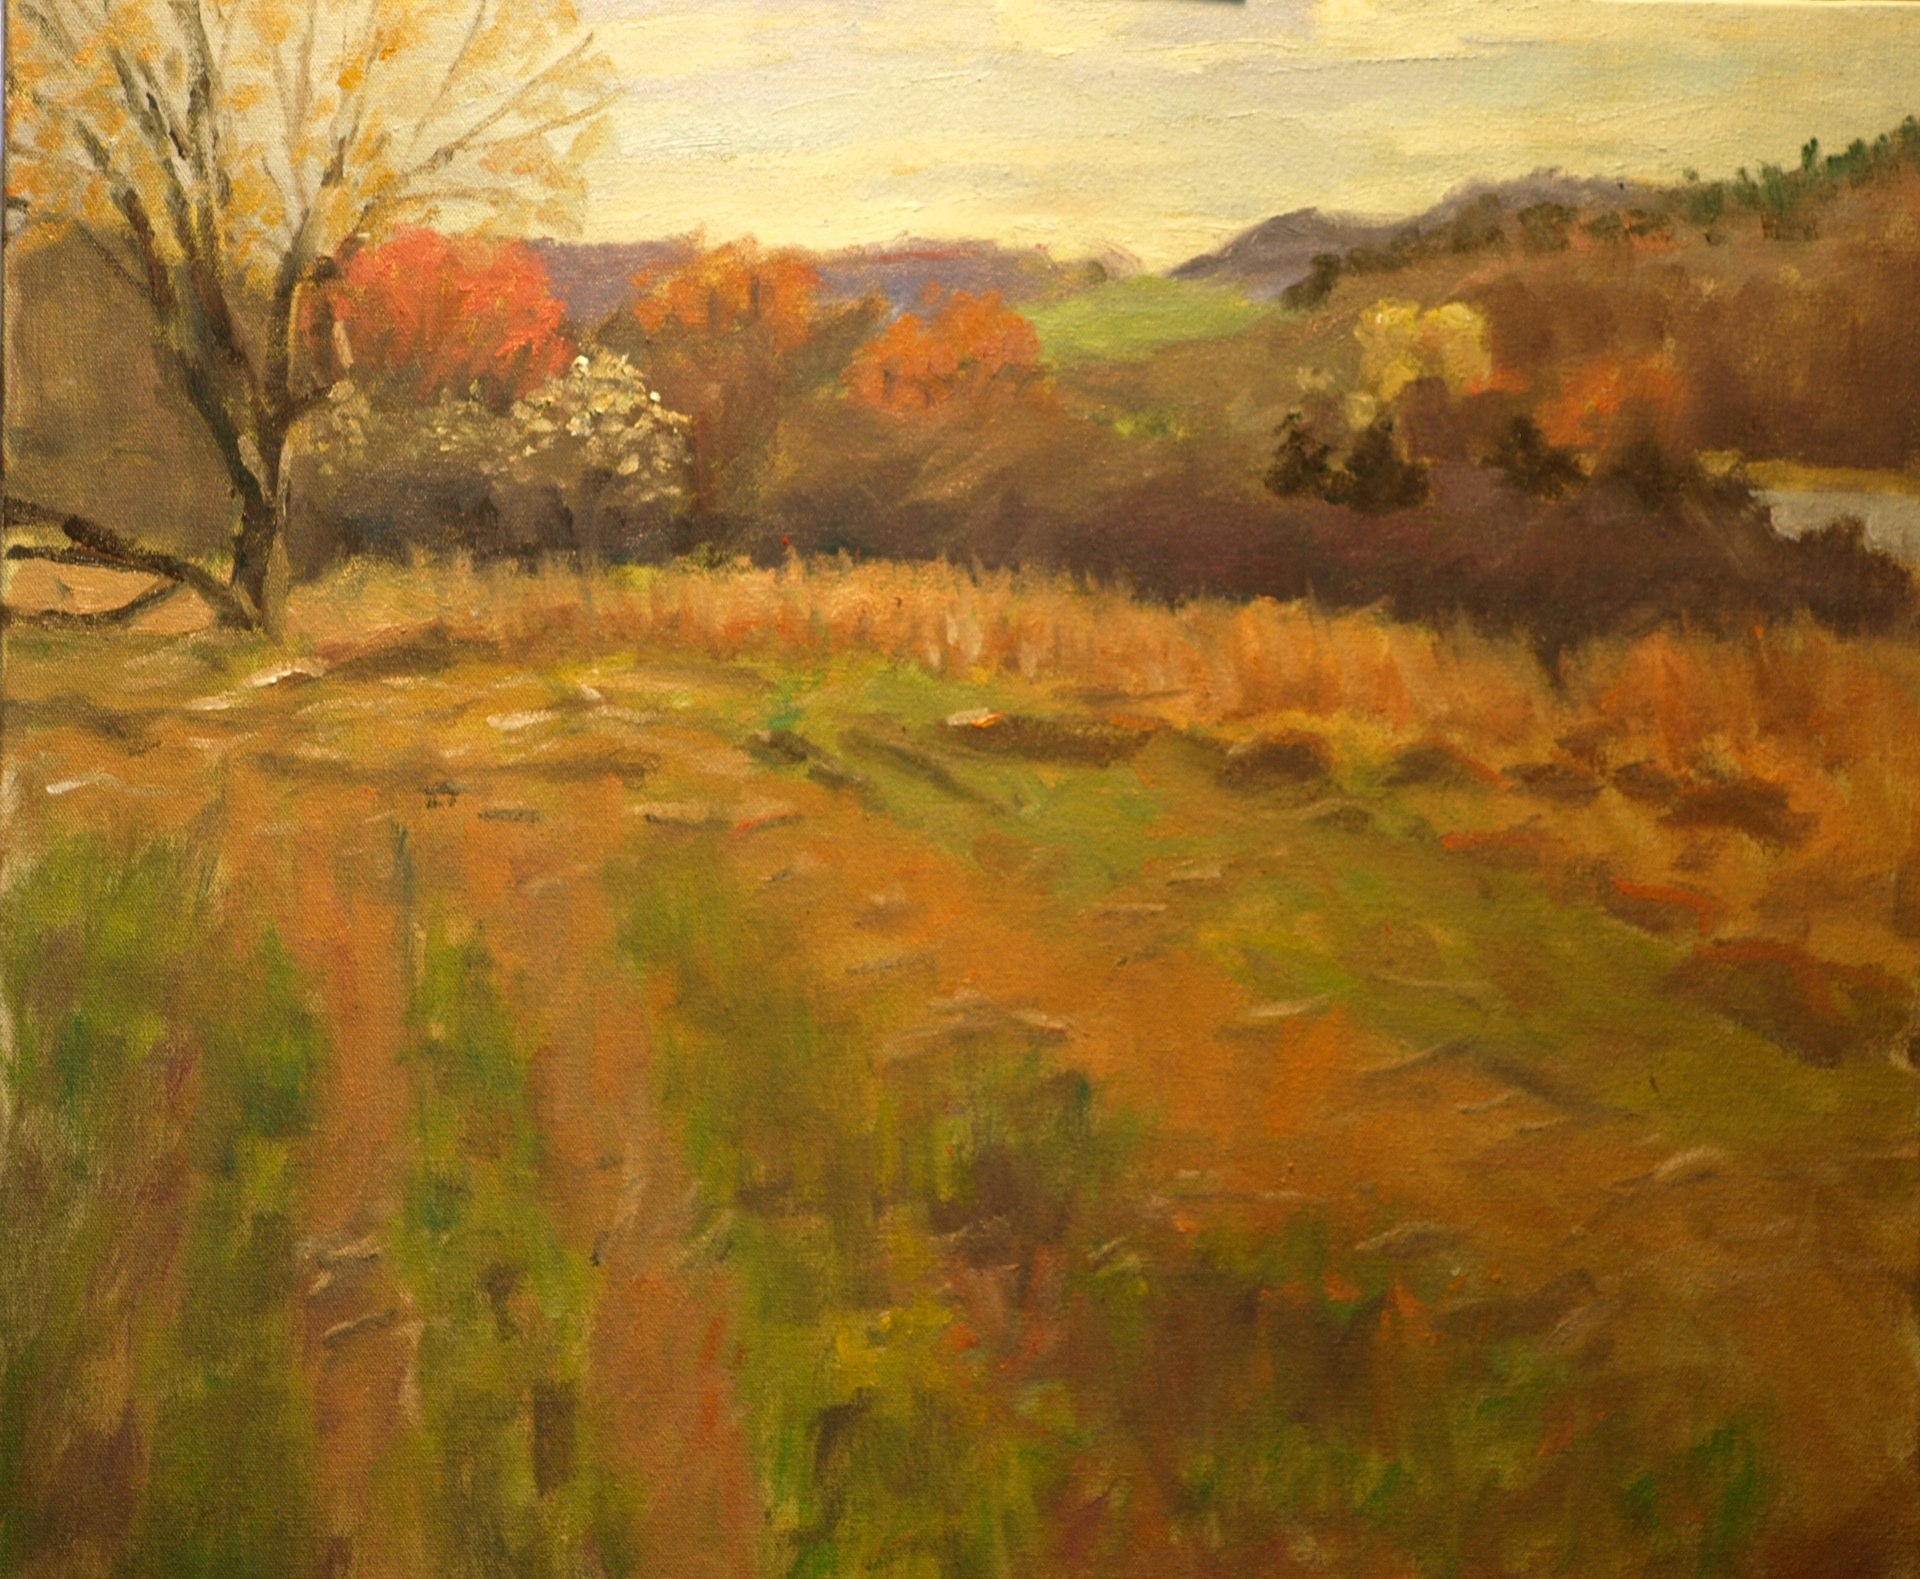 The Marsh Meadow - Spring, Oil on Canvas, 20 x 24 Inches, by Richard Stalter, $850